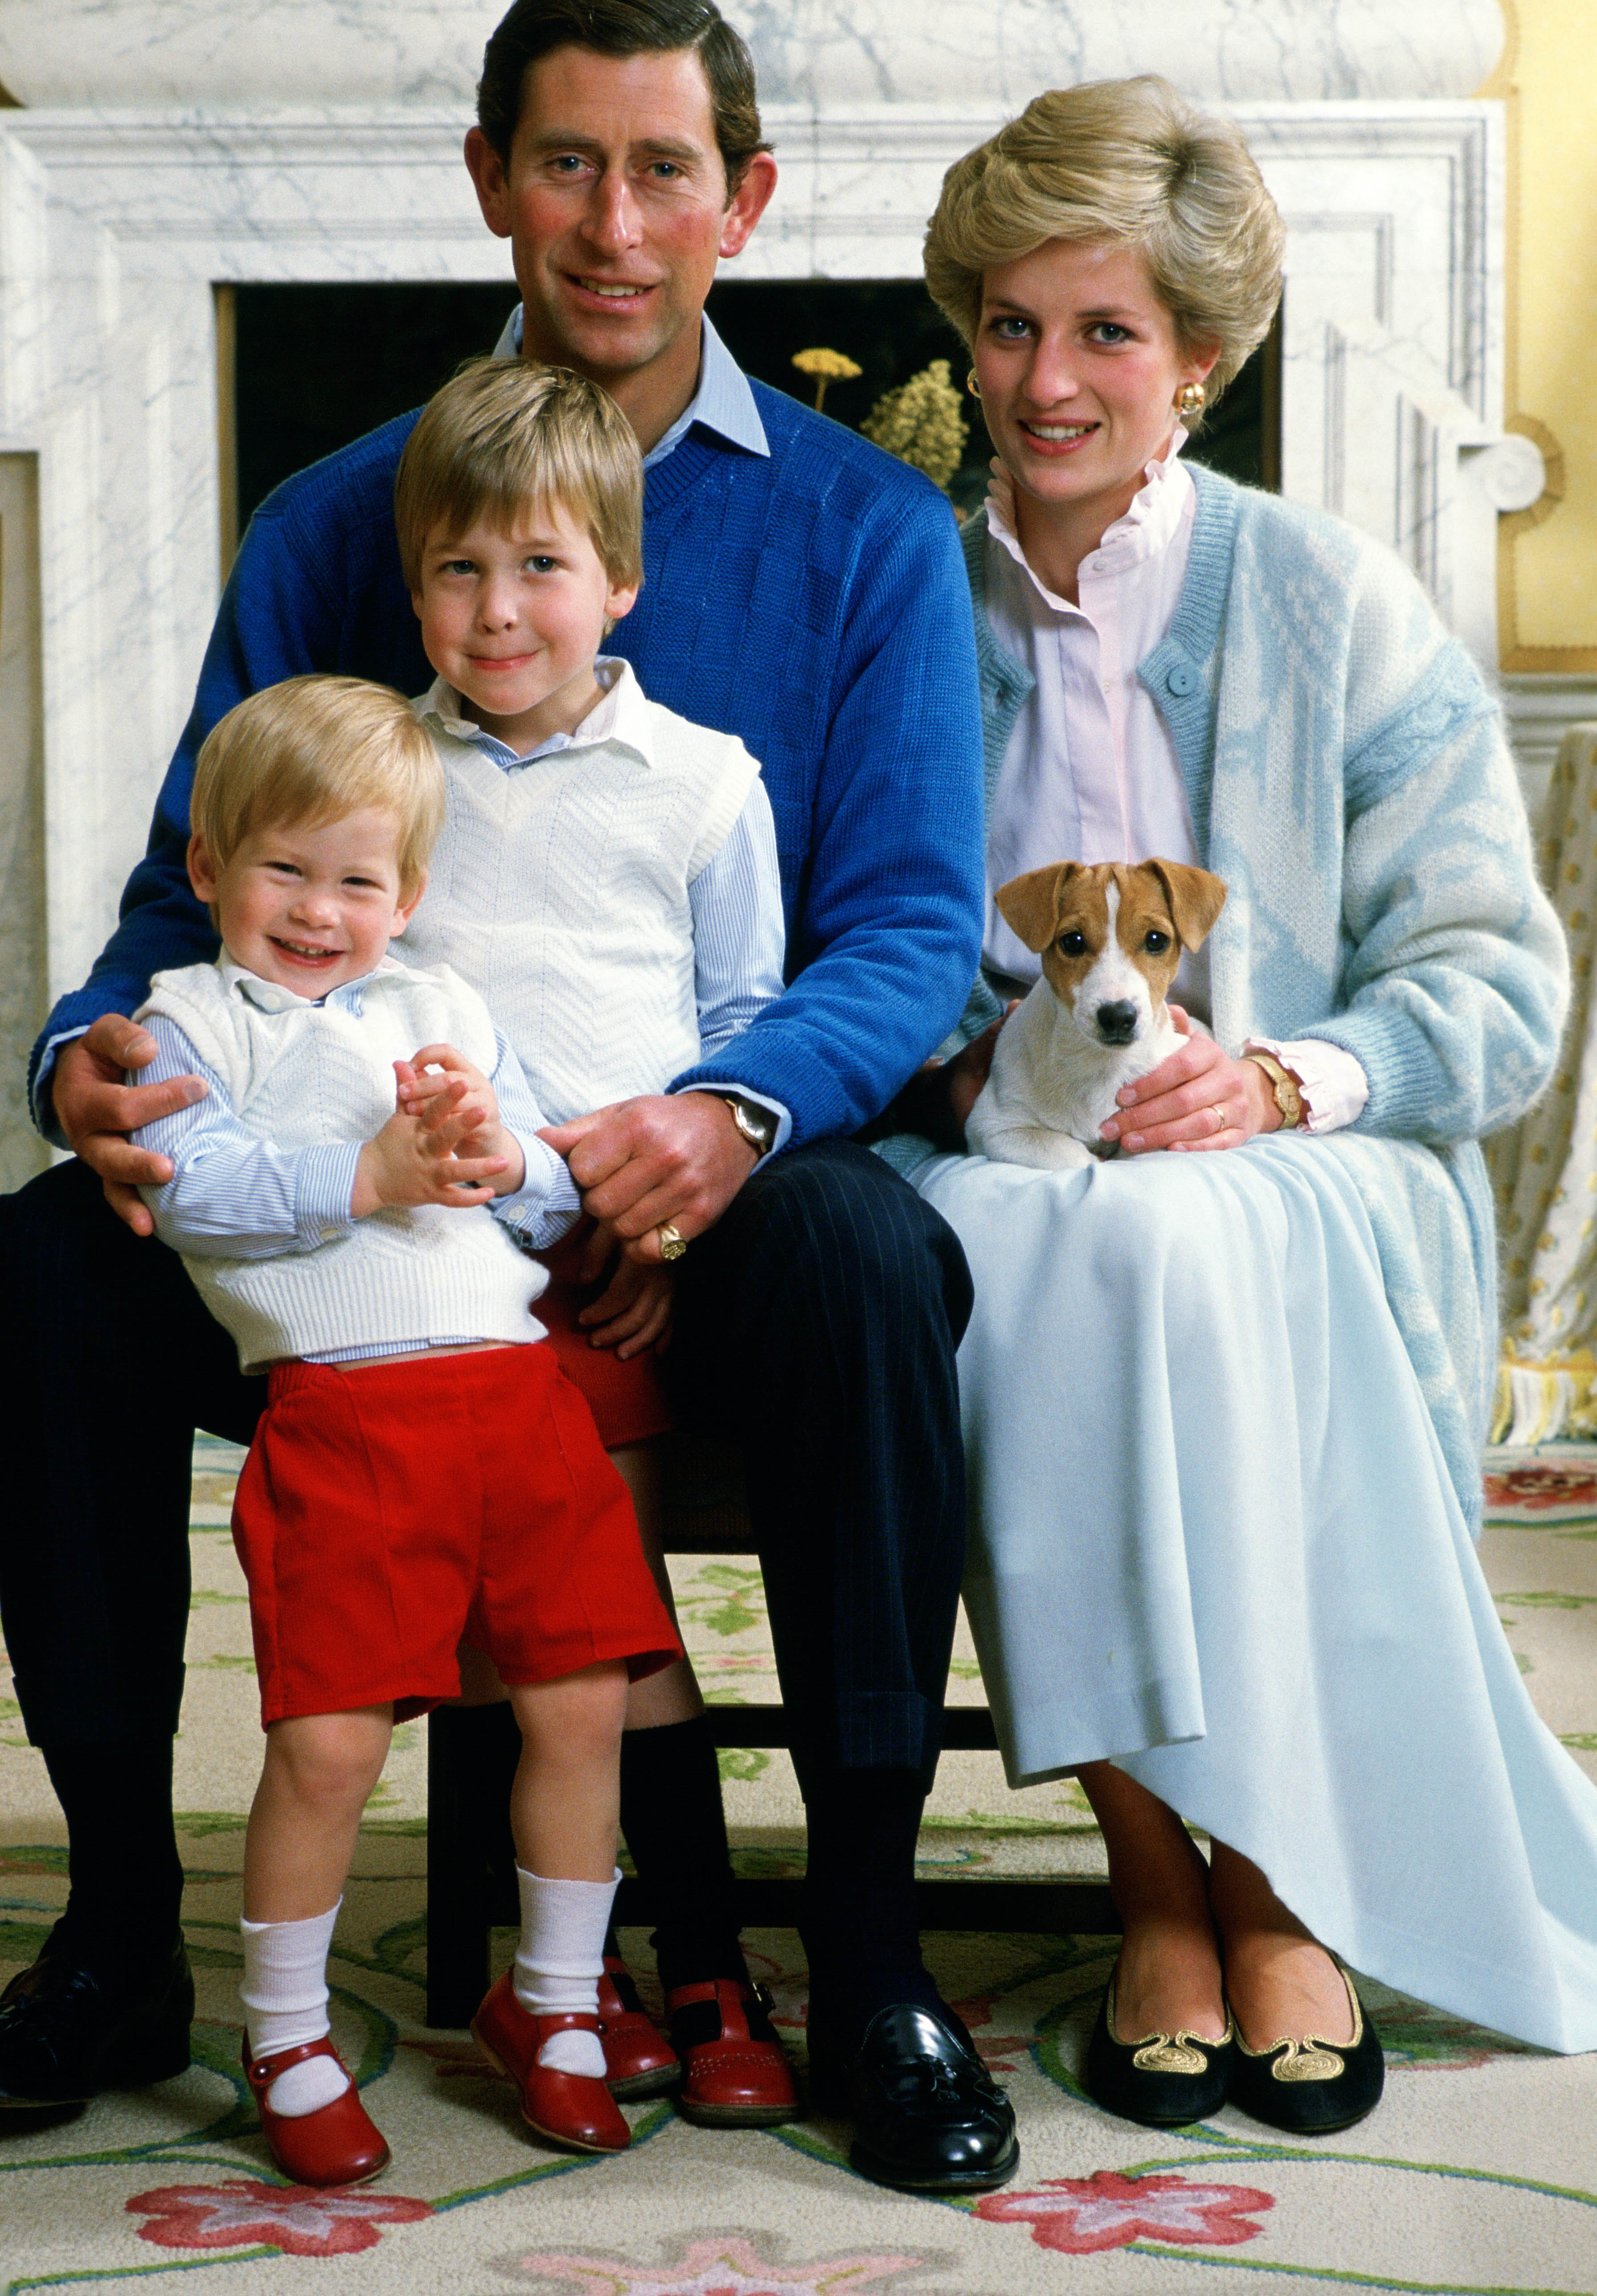 Príncipe Carlos, Lady Diana, Príncipe Harry, Príncipe William